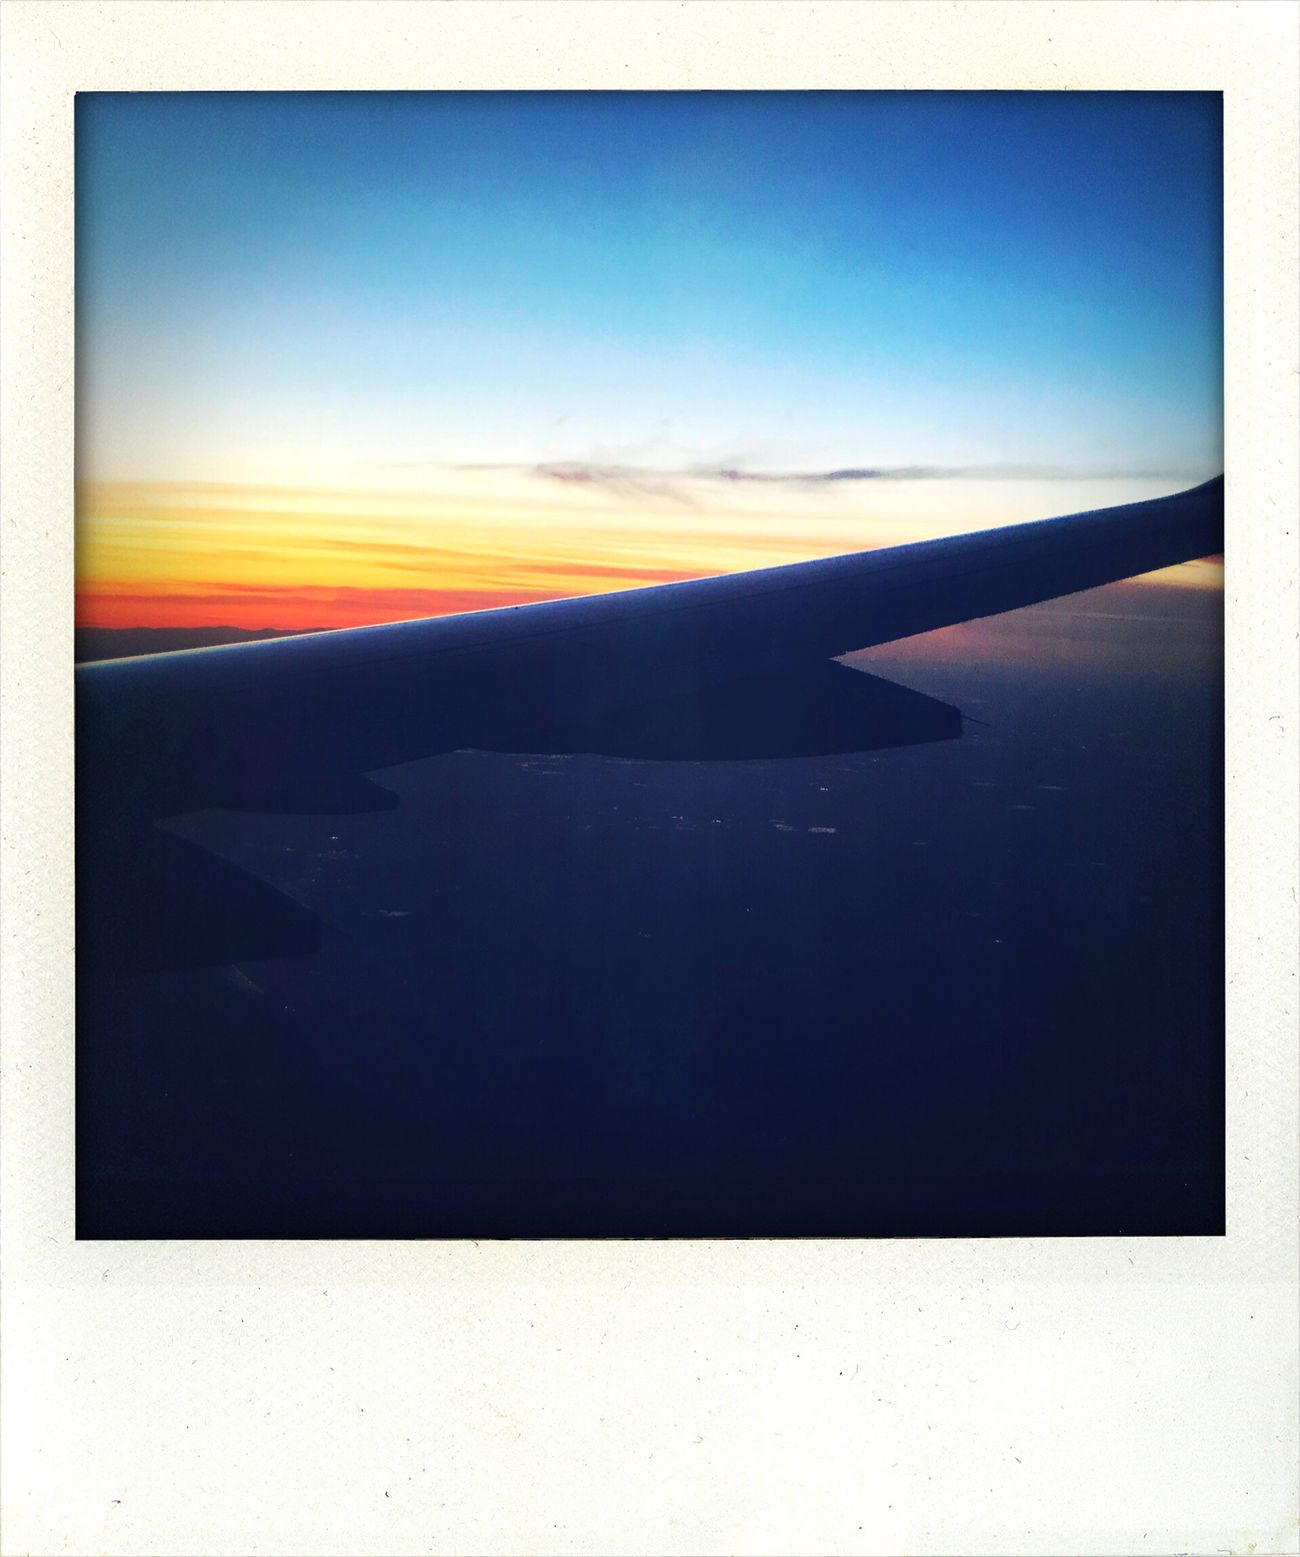 Shake It Photo Aerial View Airplane Wing Journey Sunset Koduckgirl